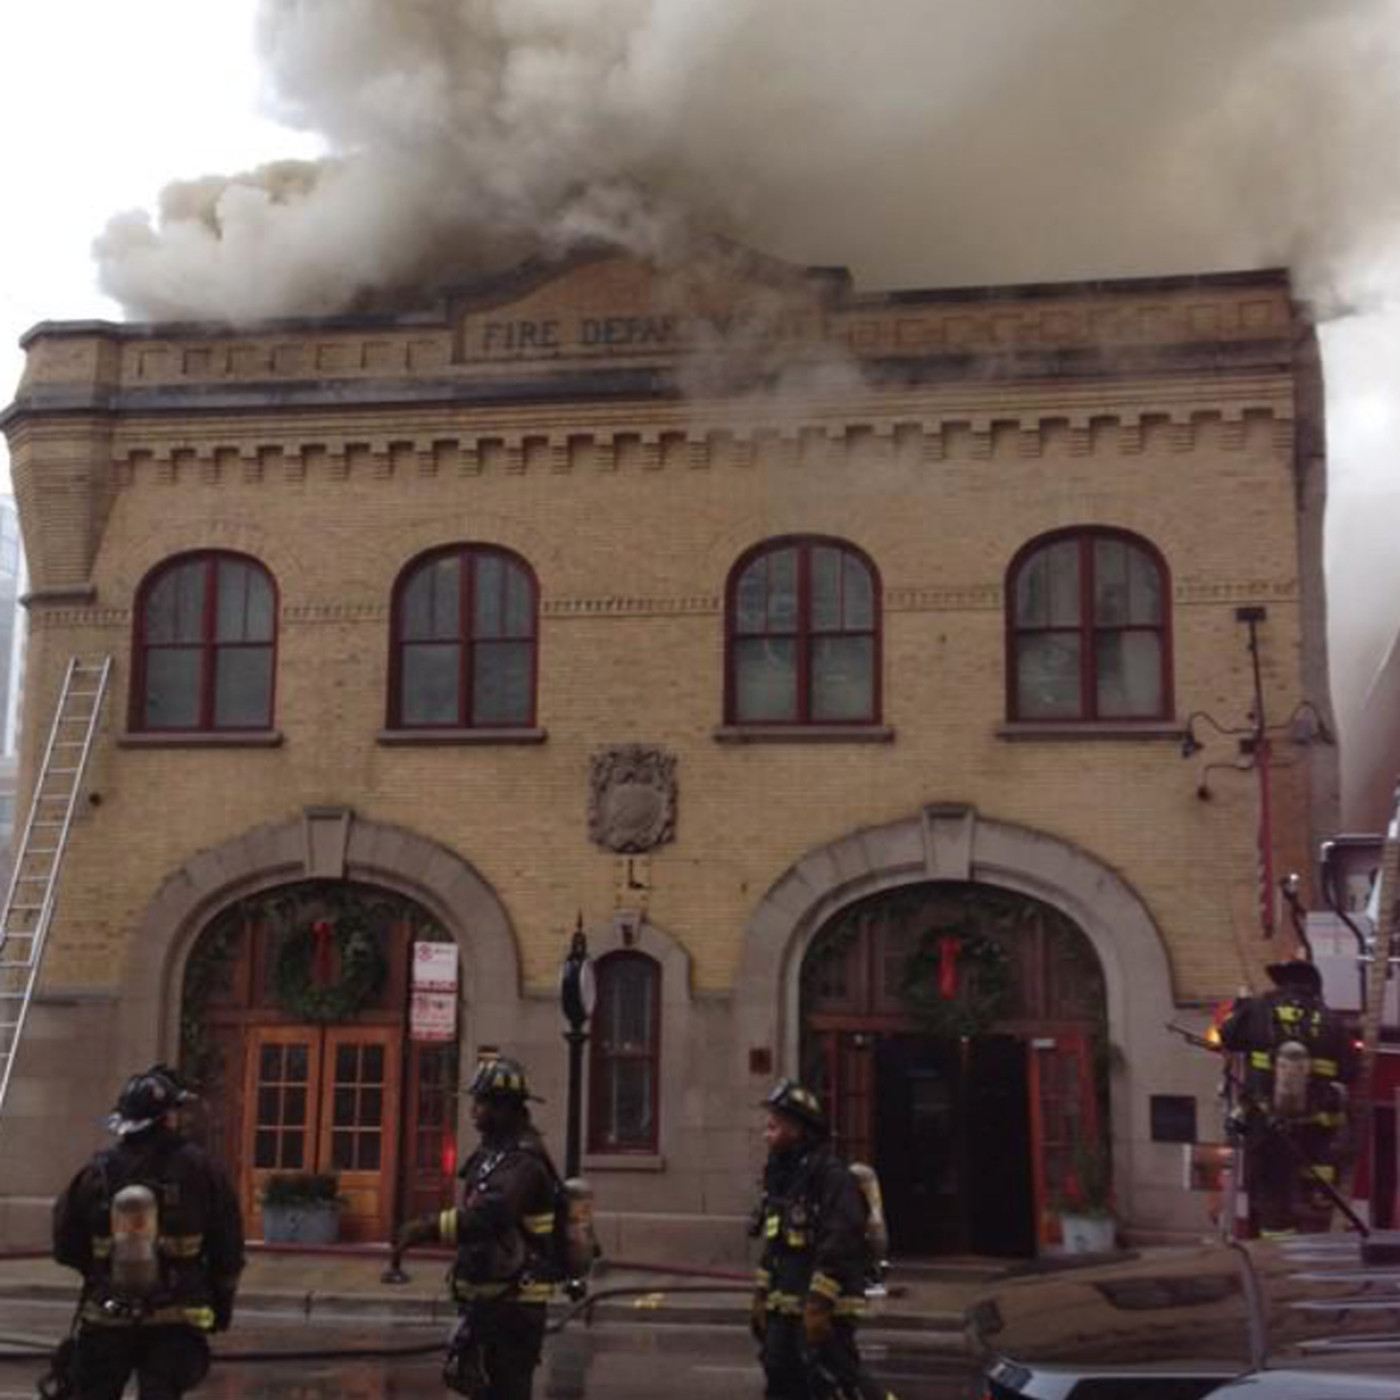 NEW UPDATE: Crews Fighting Blaze at Chicago Firehouse